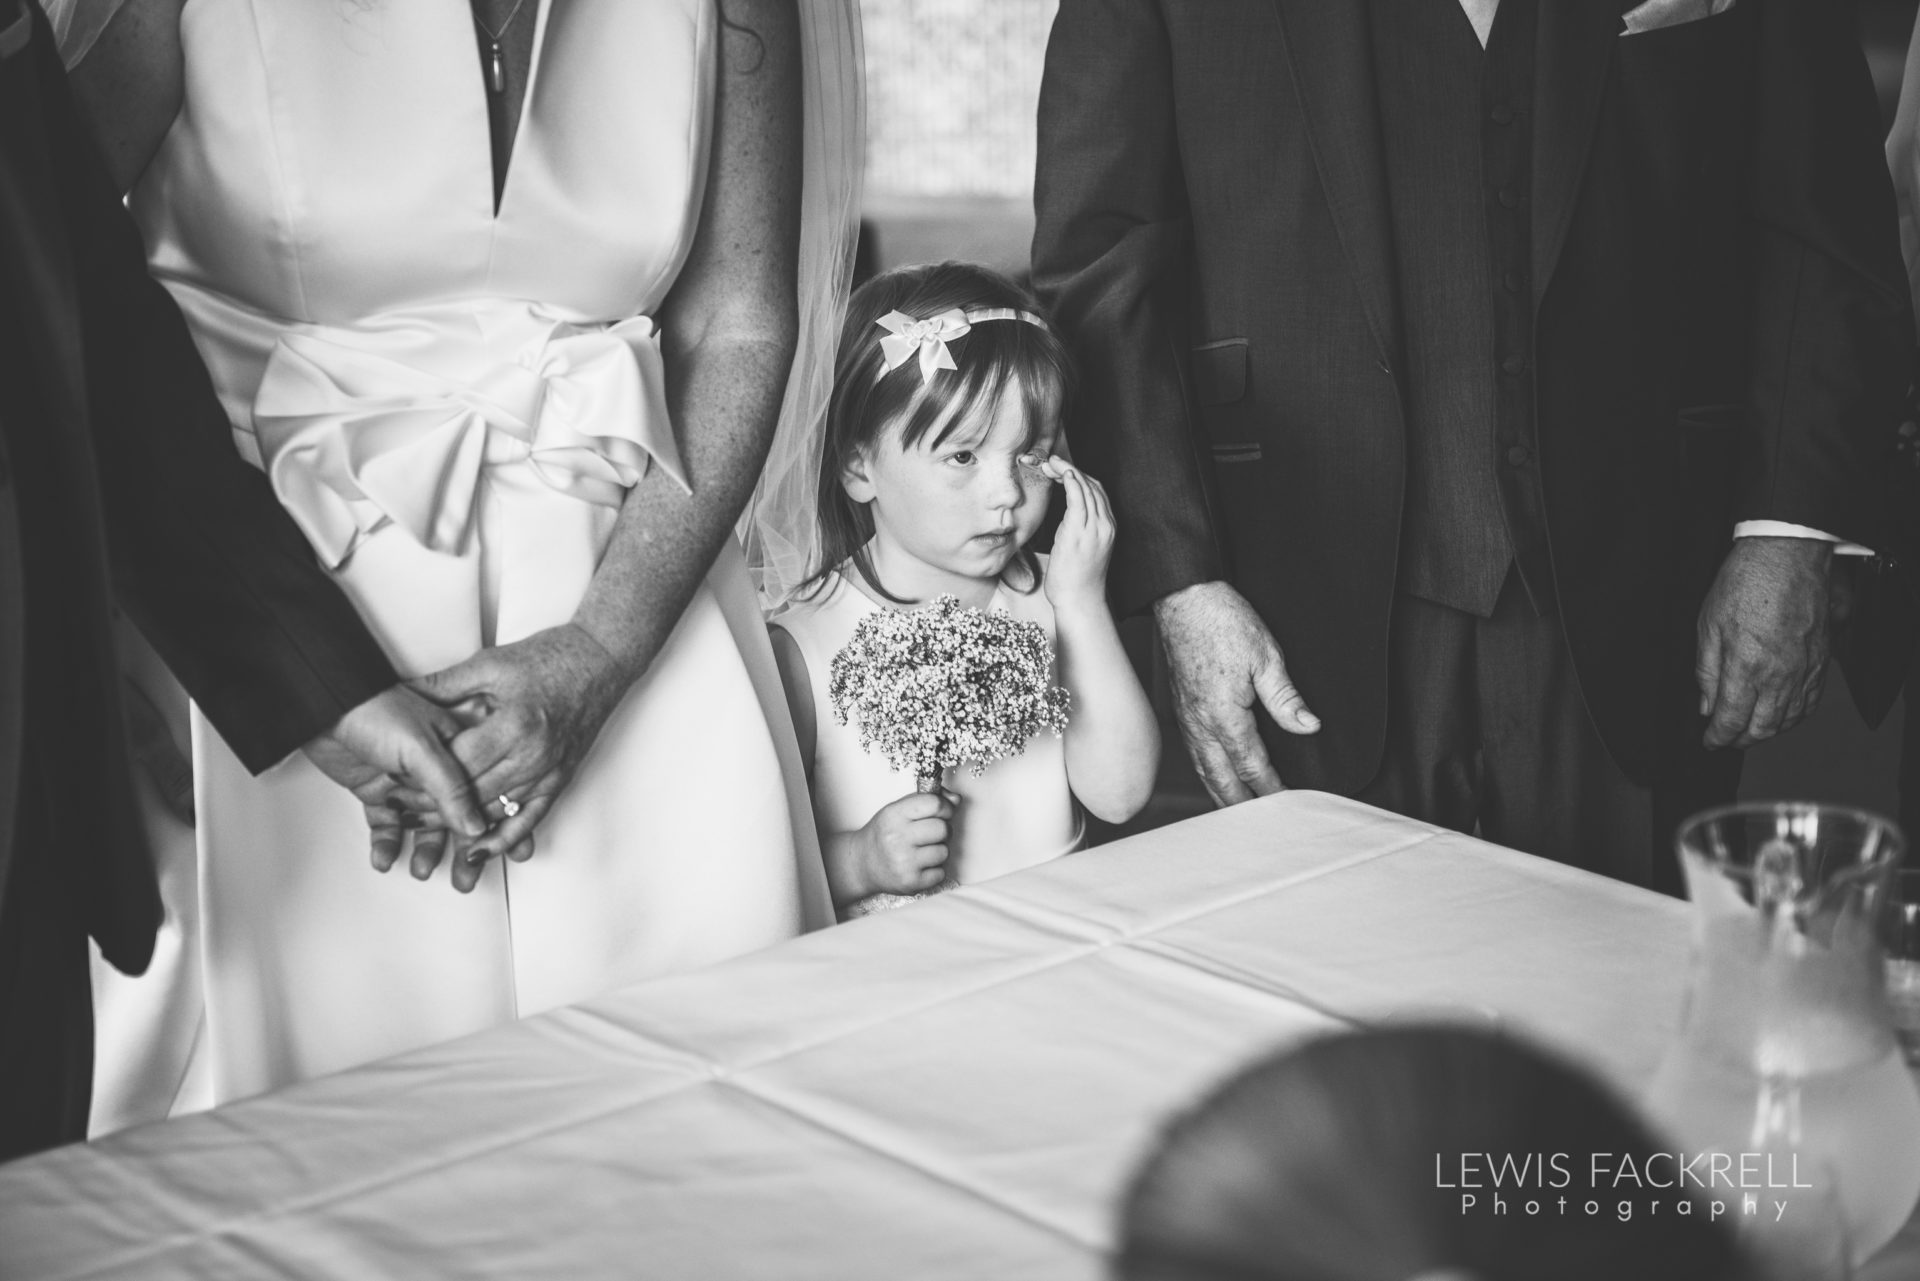 Lewis-Fackrell-Photography-Wedding-Photographer-Cardiff-Swansea-Bristol-Newport-Pre-wedding-photoshoot-Rhian-Mark-Mansion-House-Llansteffan-Carmarthenshire--36